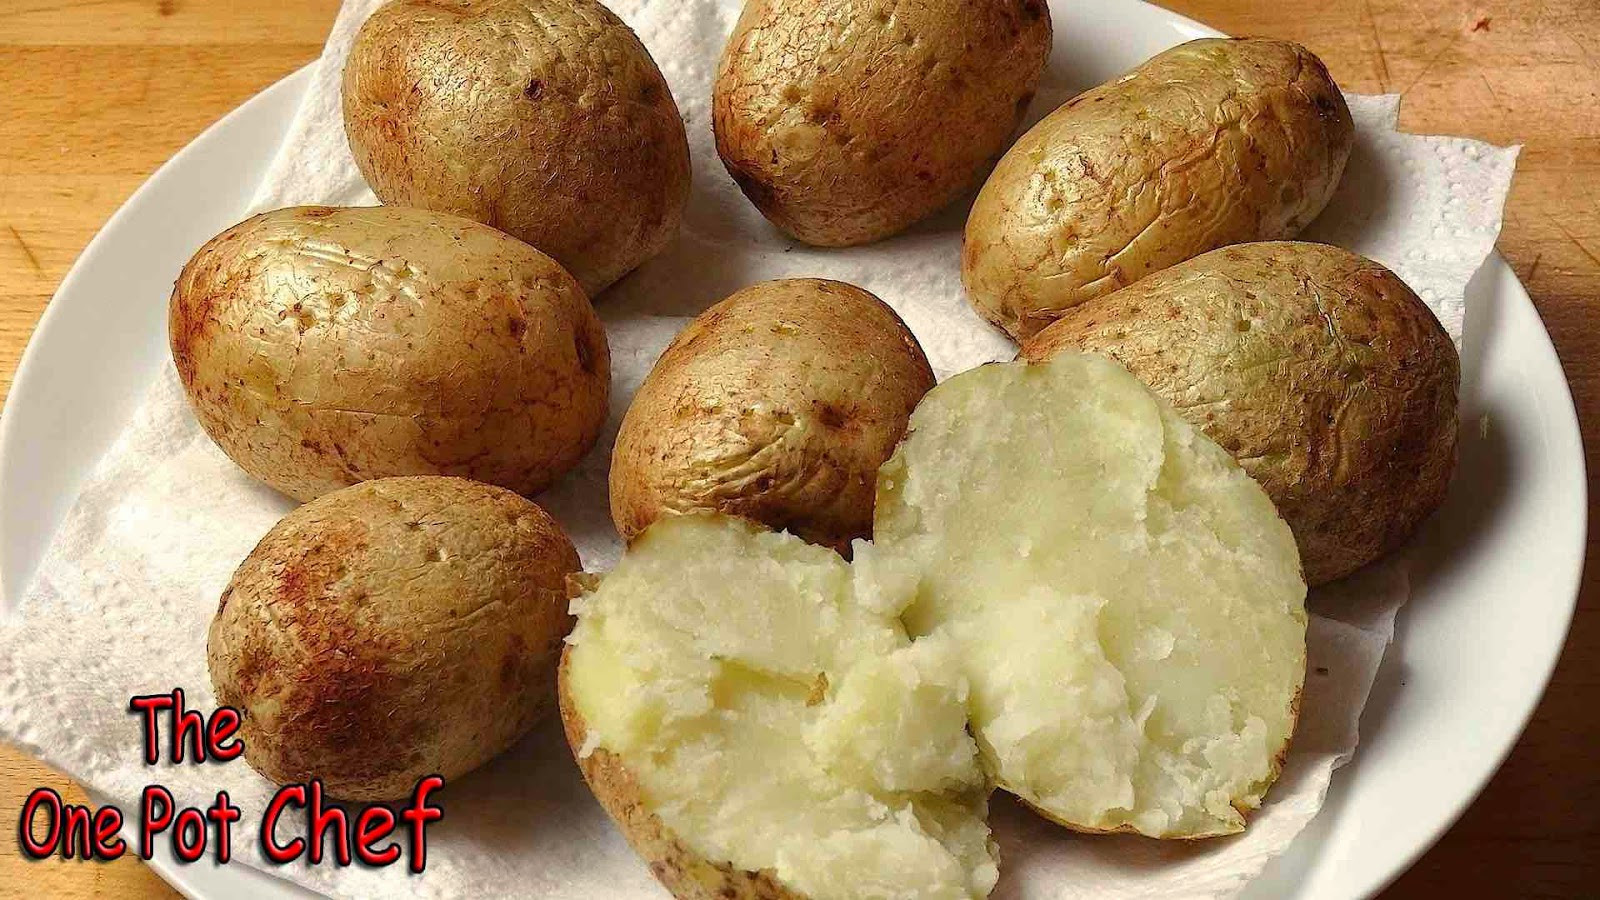 How To Bake A Potato In A Microwave  The e Pot Chef Show Quick Tips Microwave Baked Potatoes